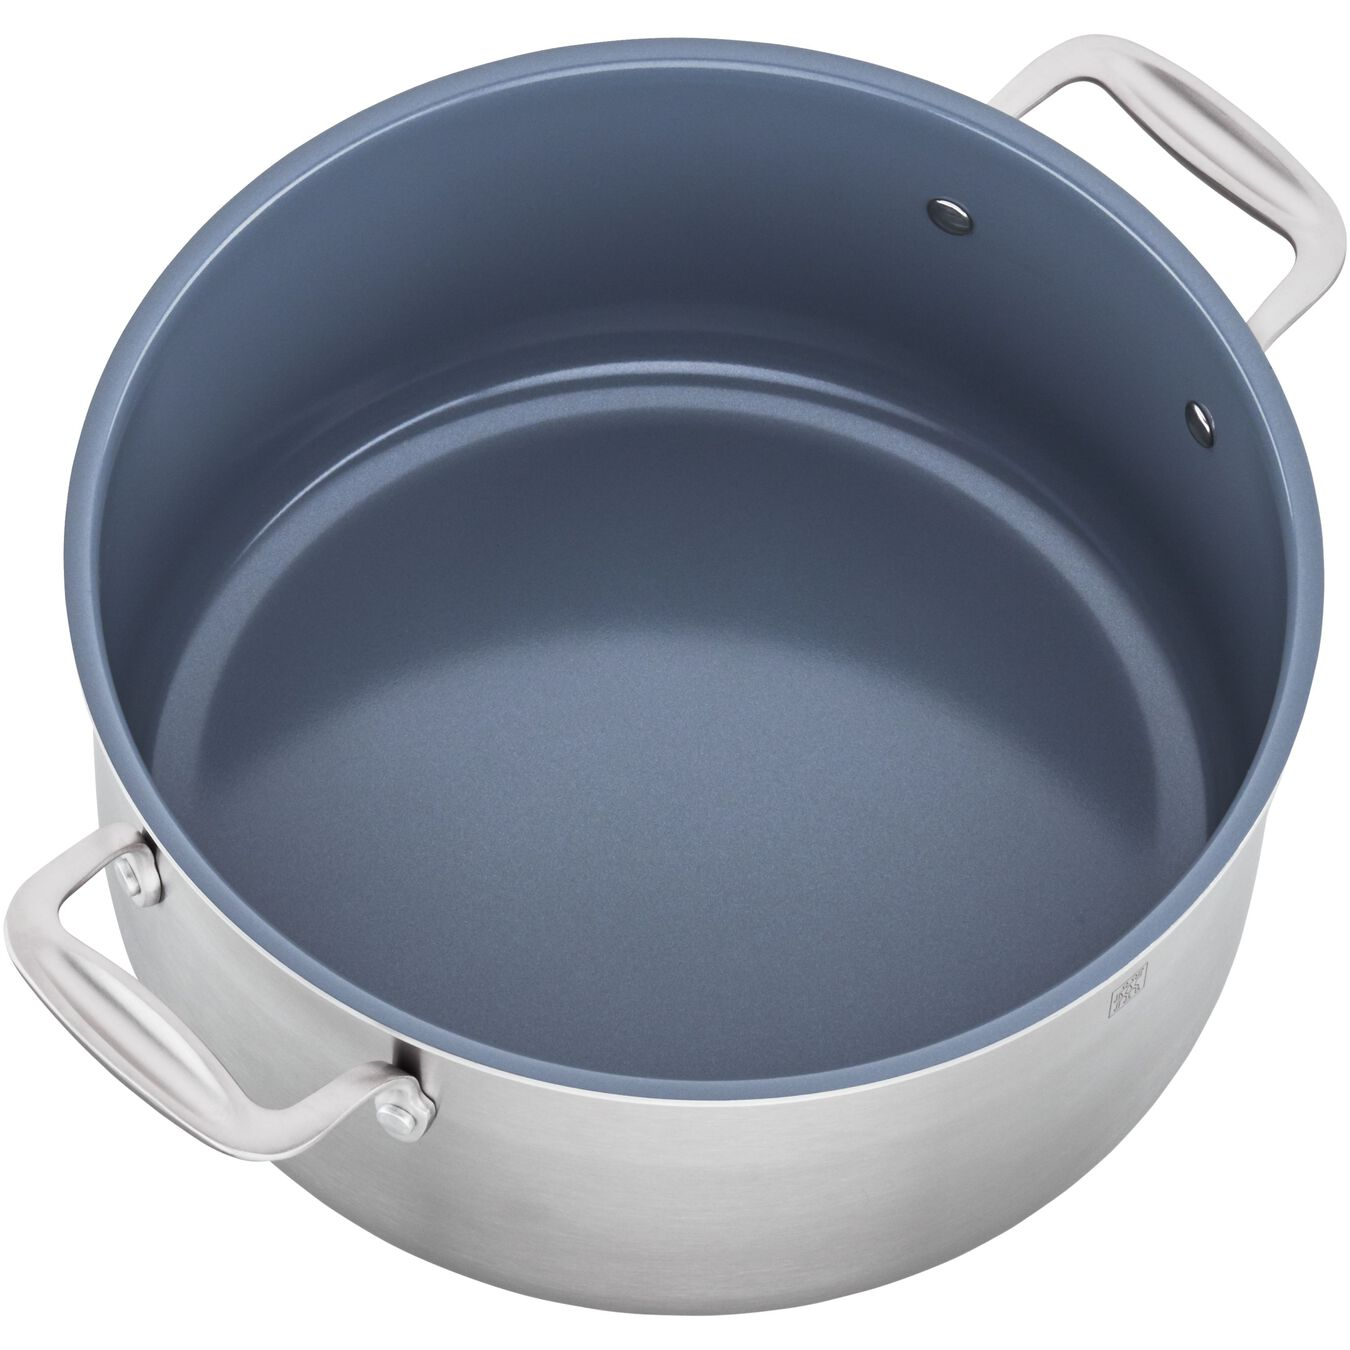 3-ply 8-qt Stainless Steel Ceramic Nonstick Stock Pot,,large 3